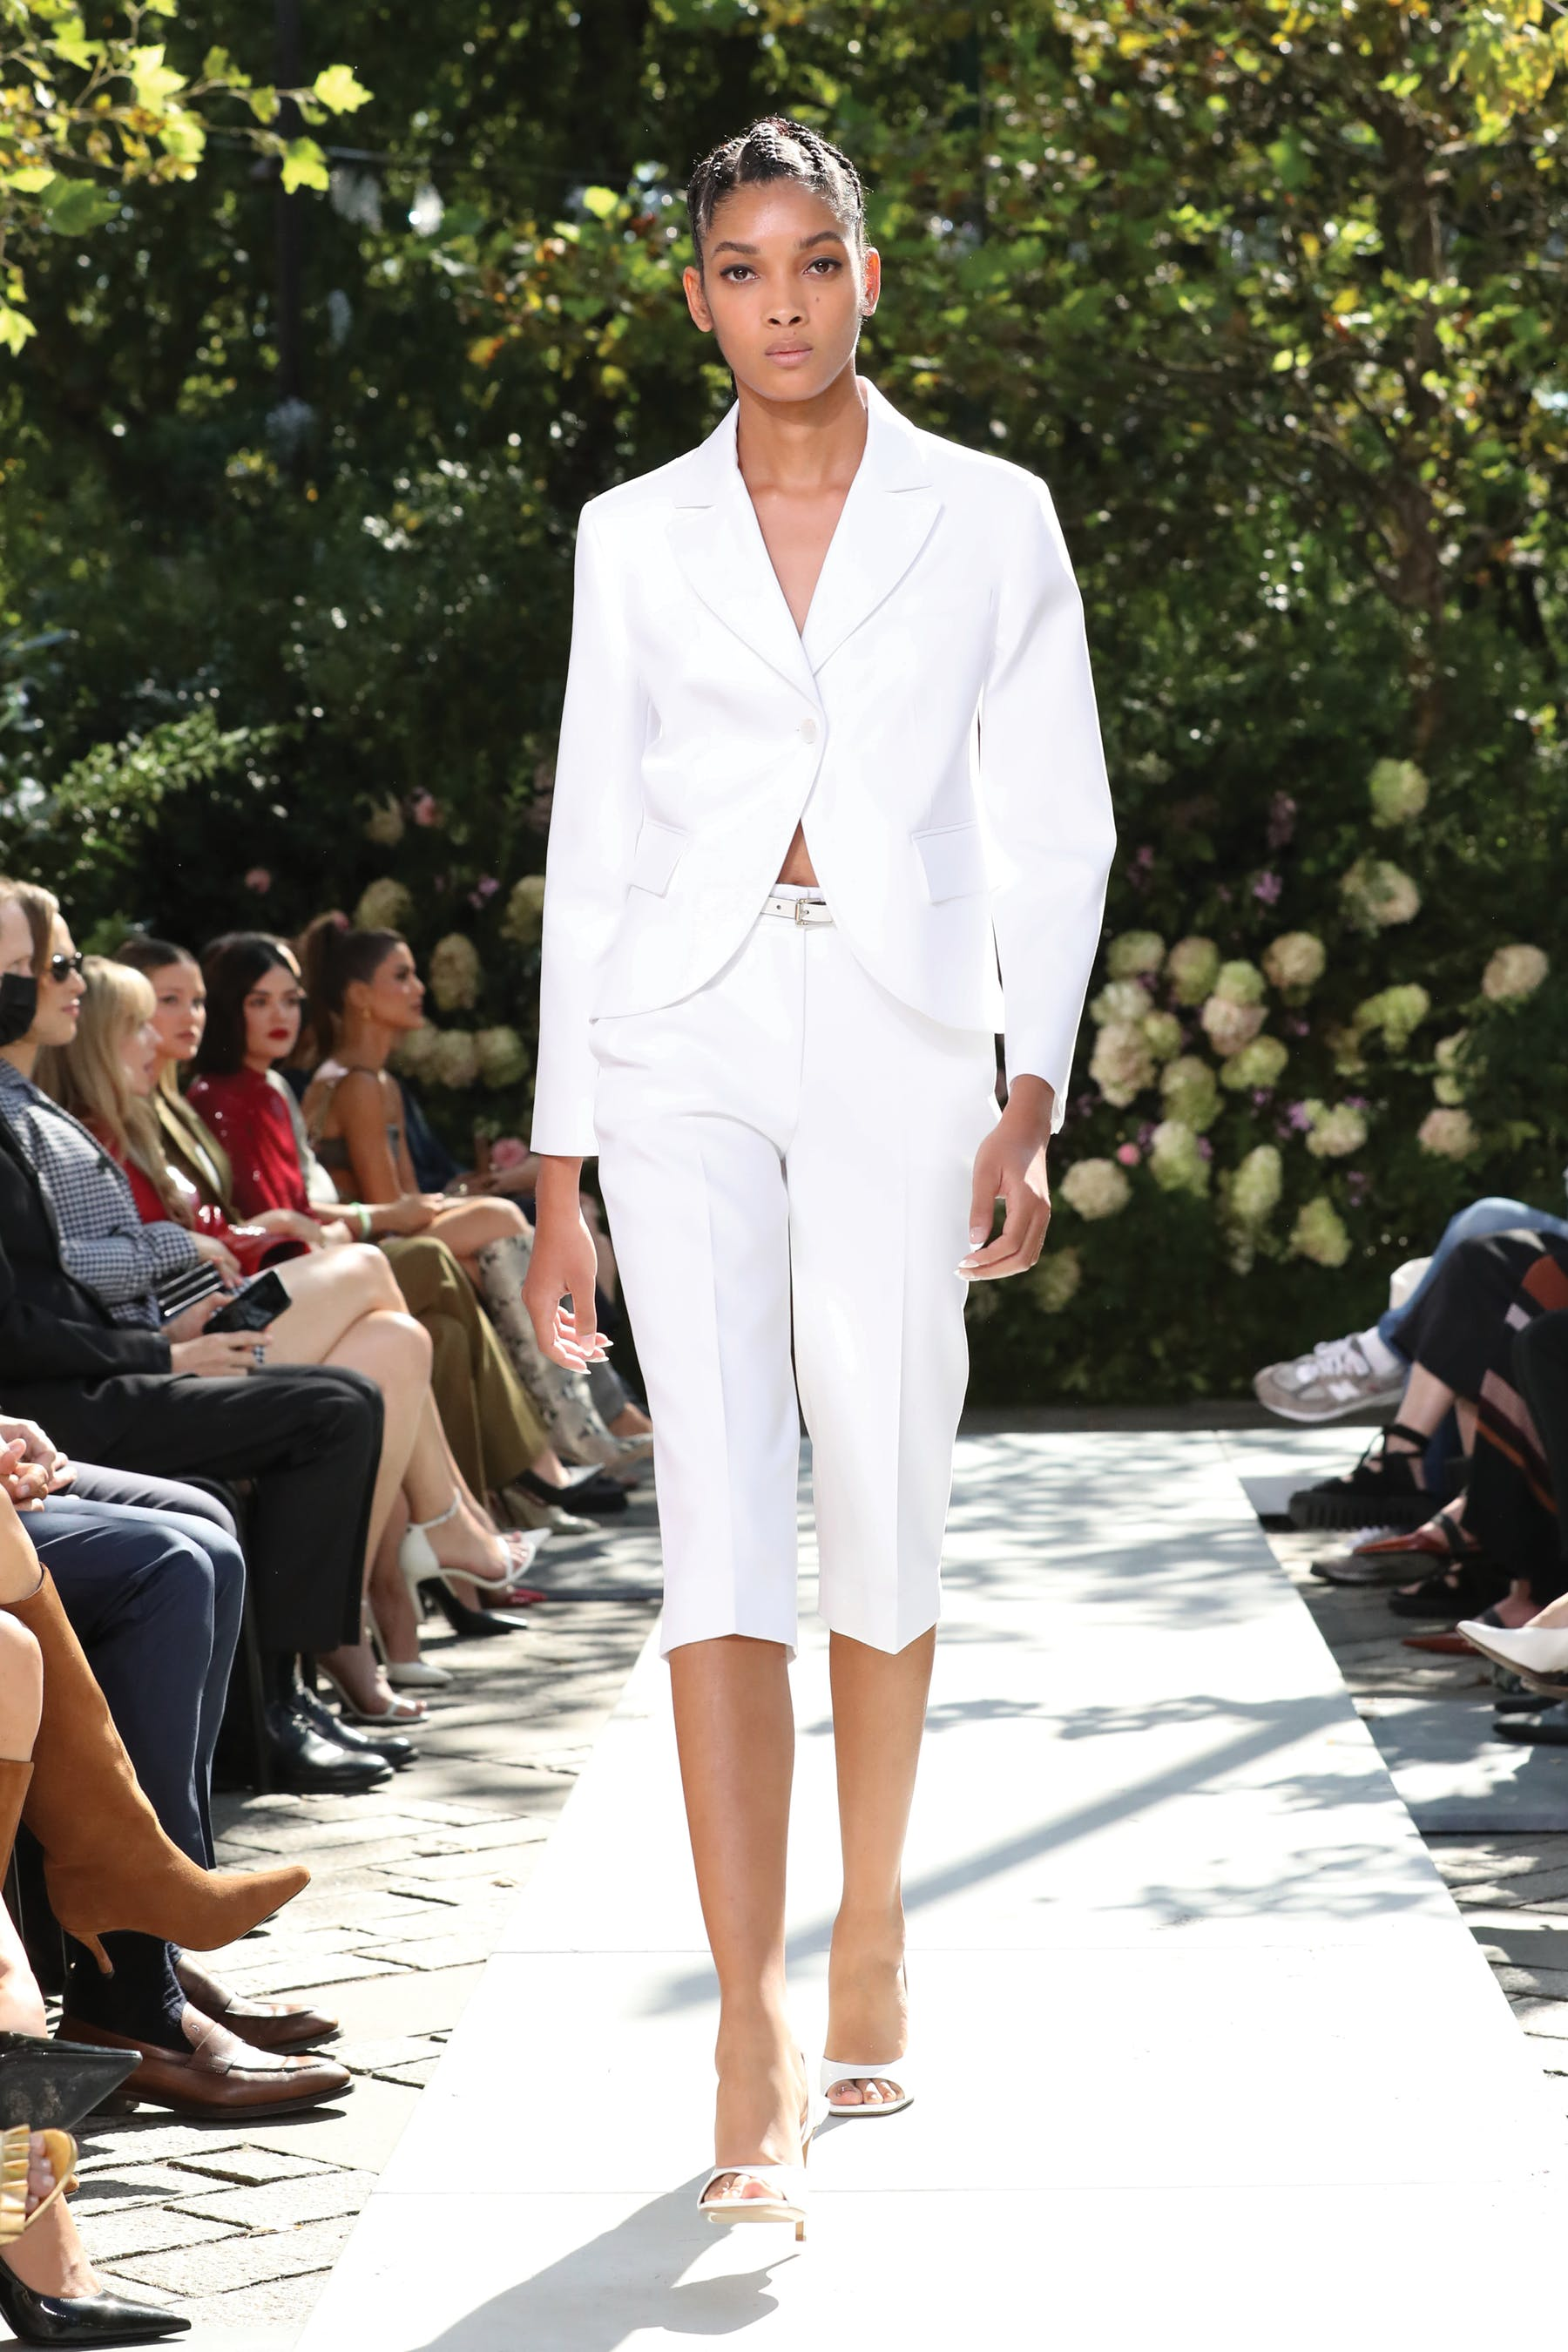 ss22-look-14